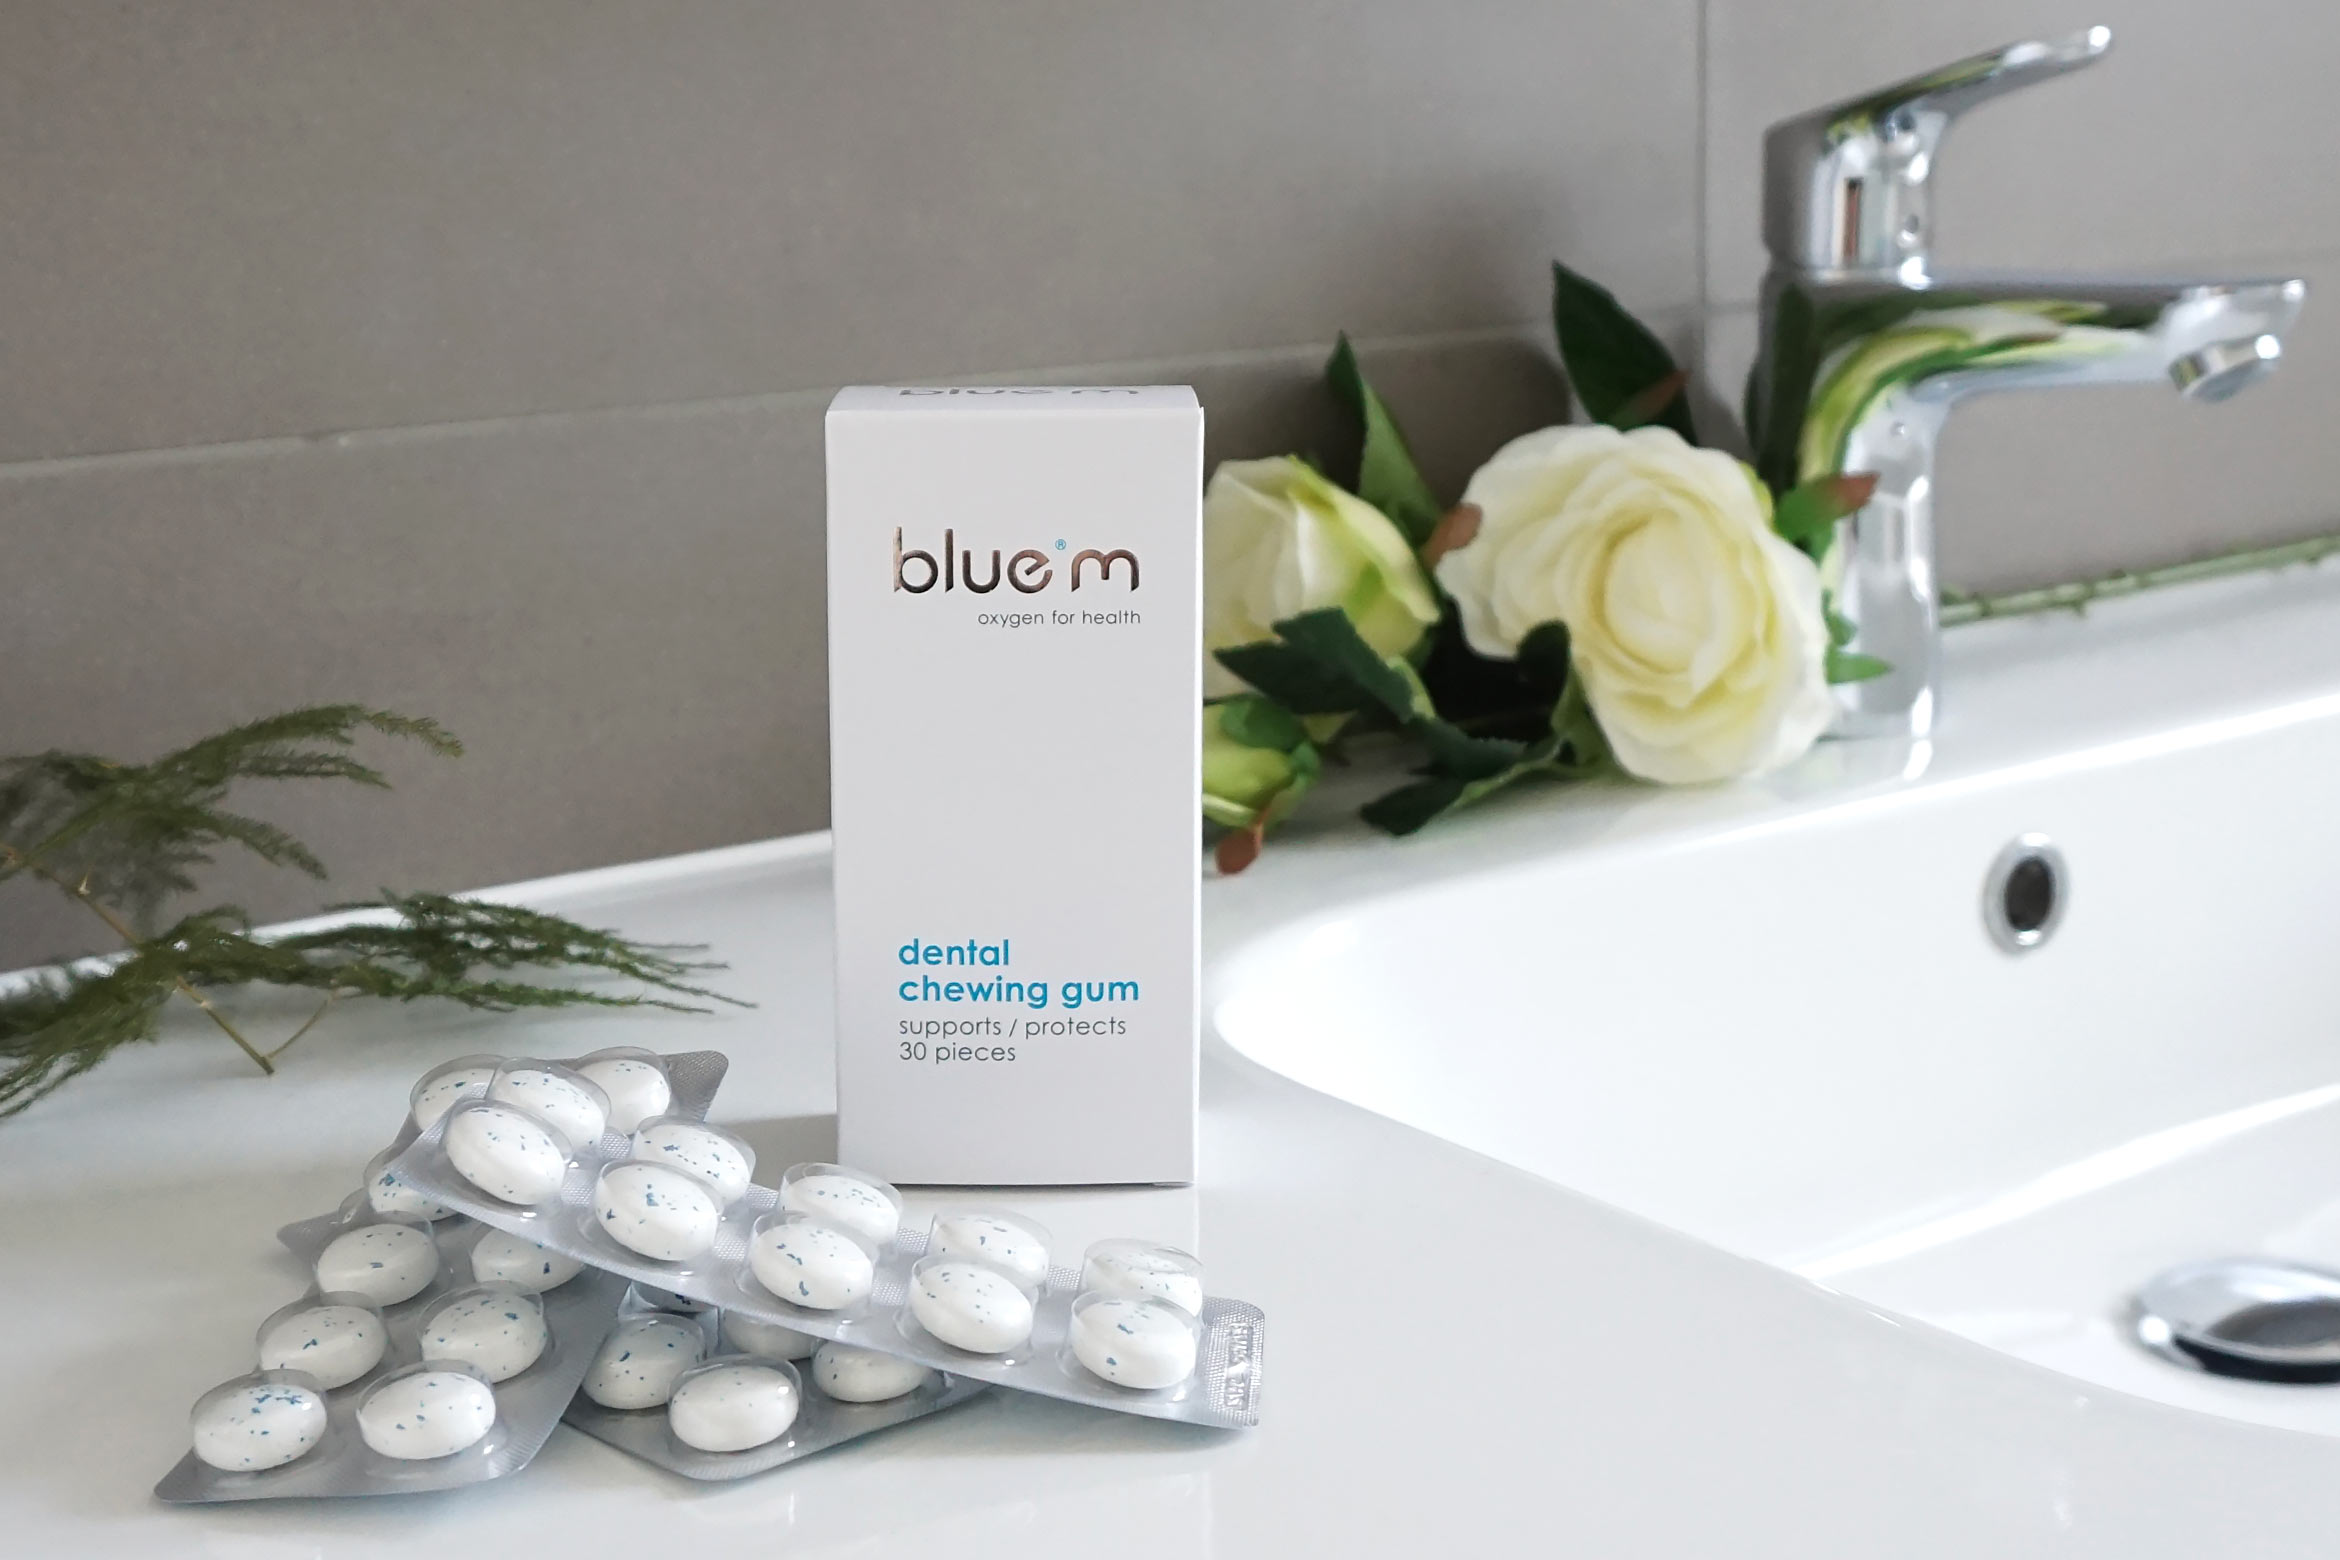 blue-m-dental-chewing-gum-review